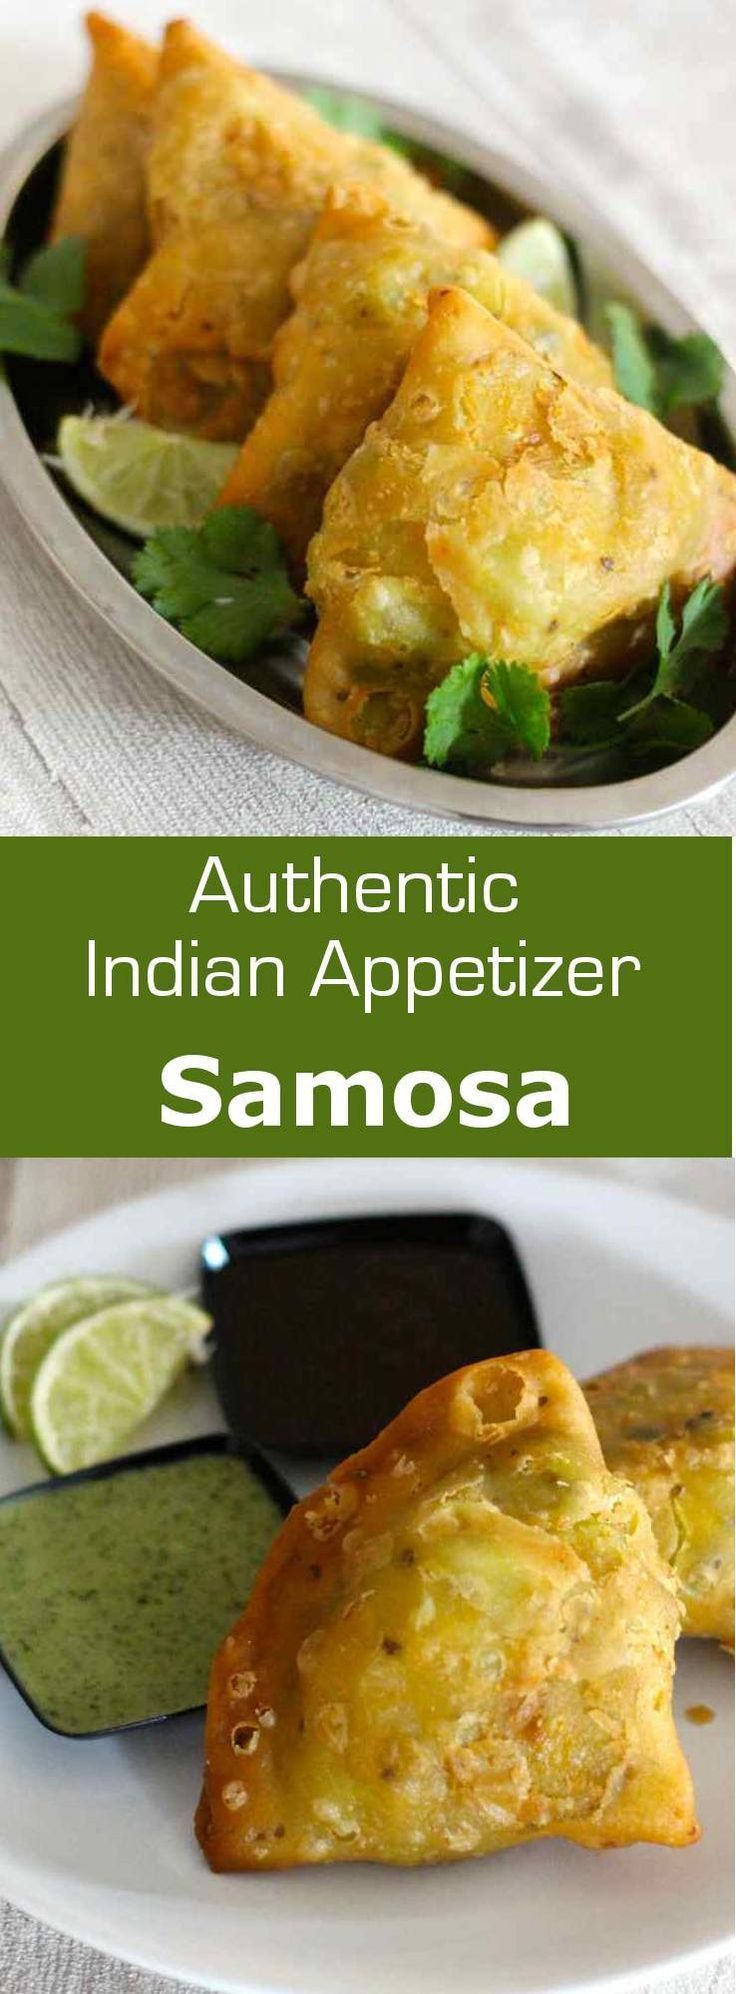 Samosas recipe snacks india and food samosa is a small triangular fried snack from northern india that is traditionally filled with vegetables forumfinder Images